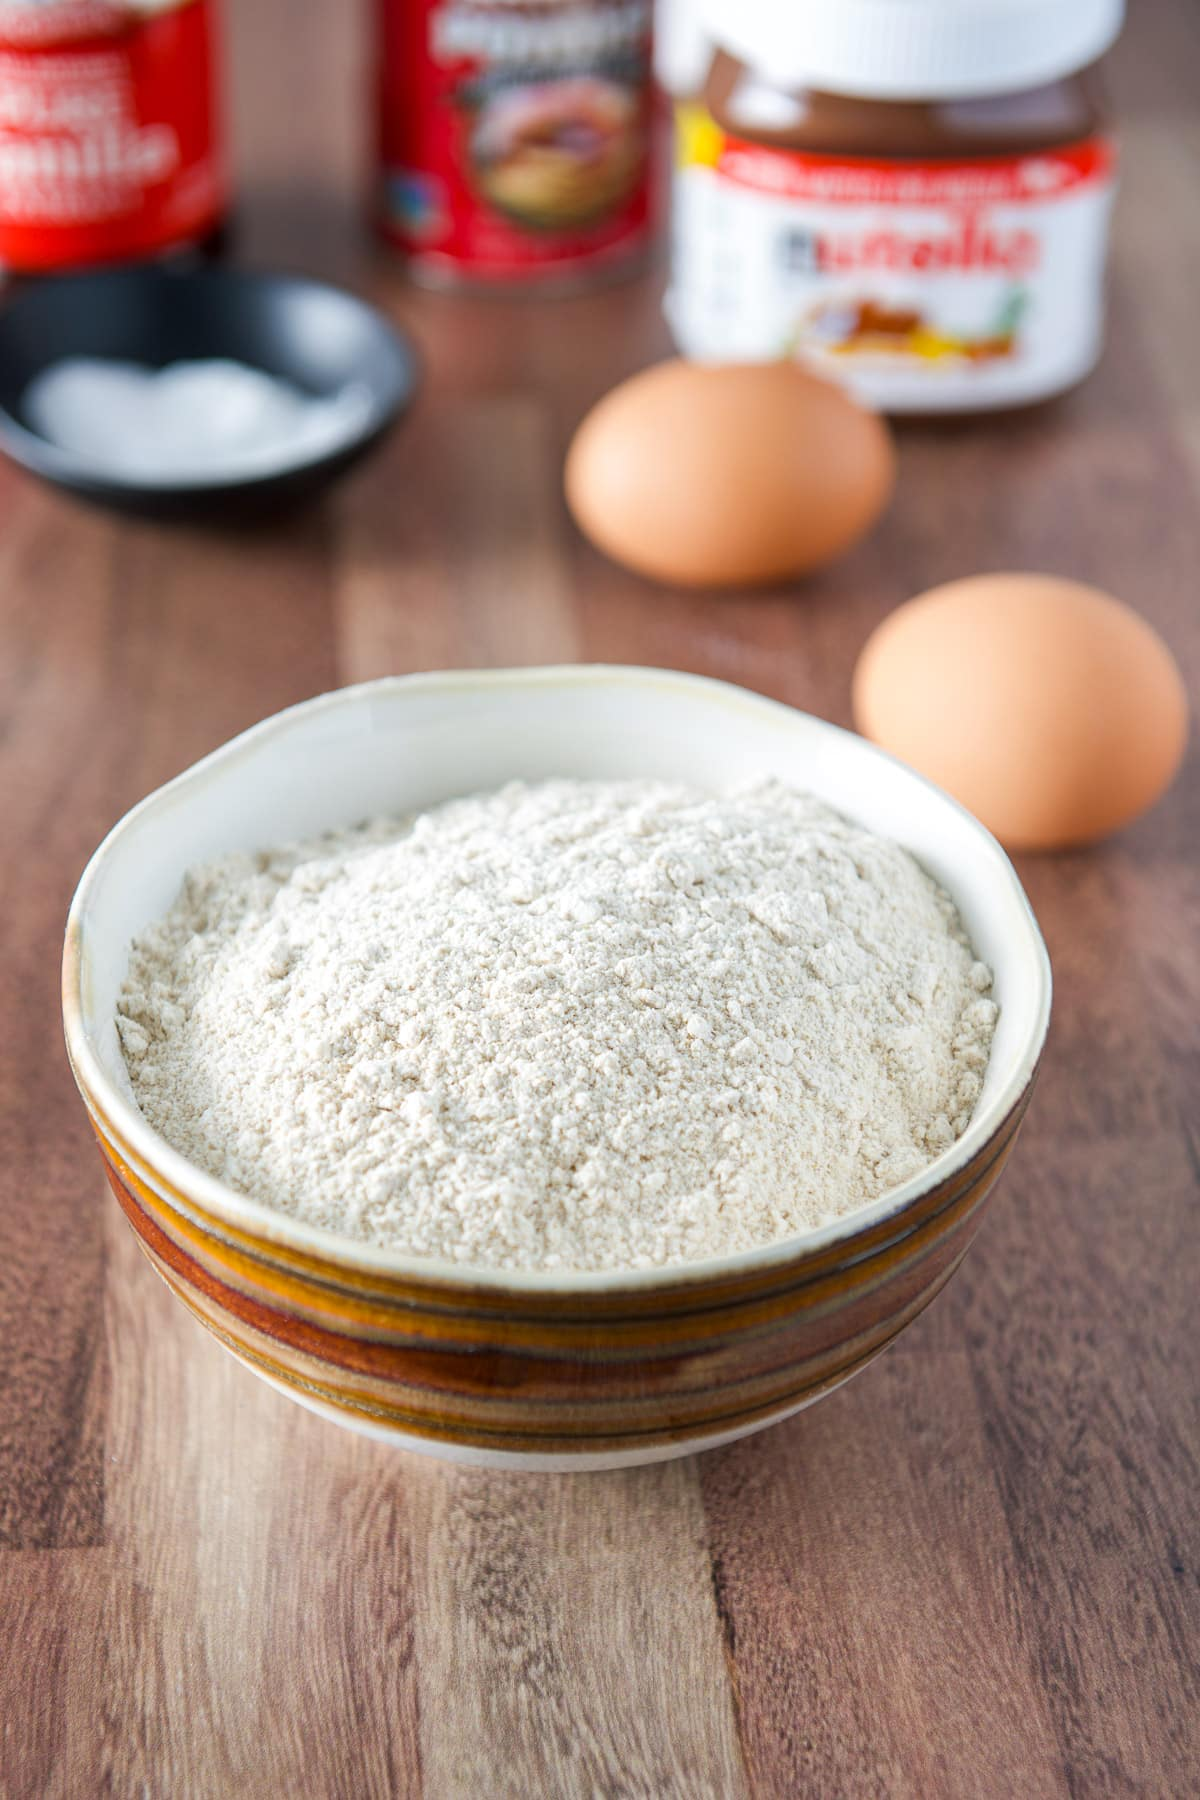 A brown bowl of flour, two eggs, Nutella, baking soda and powder